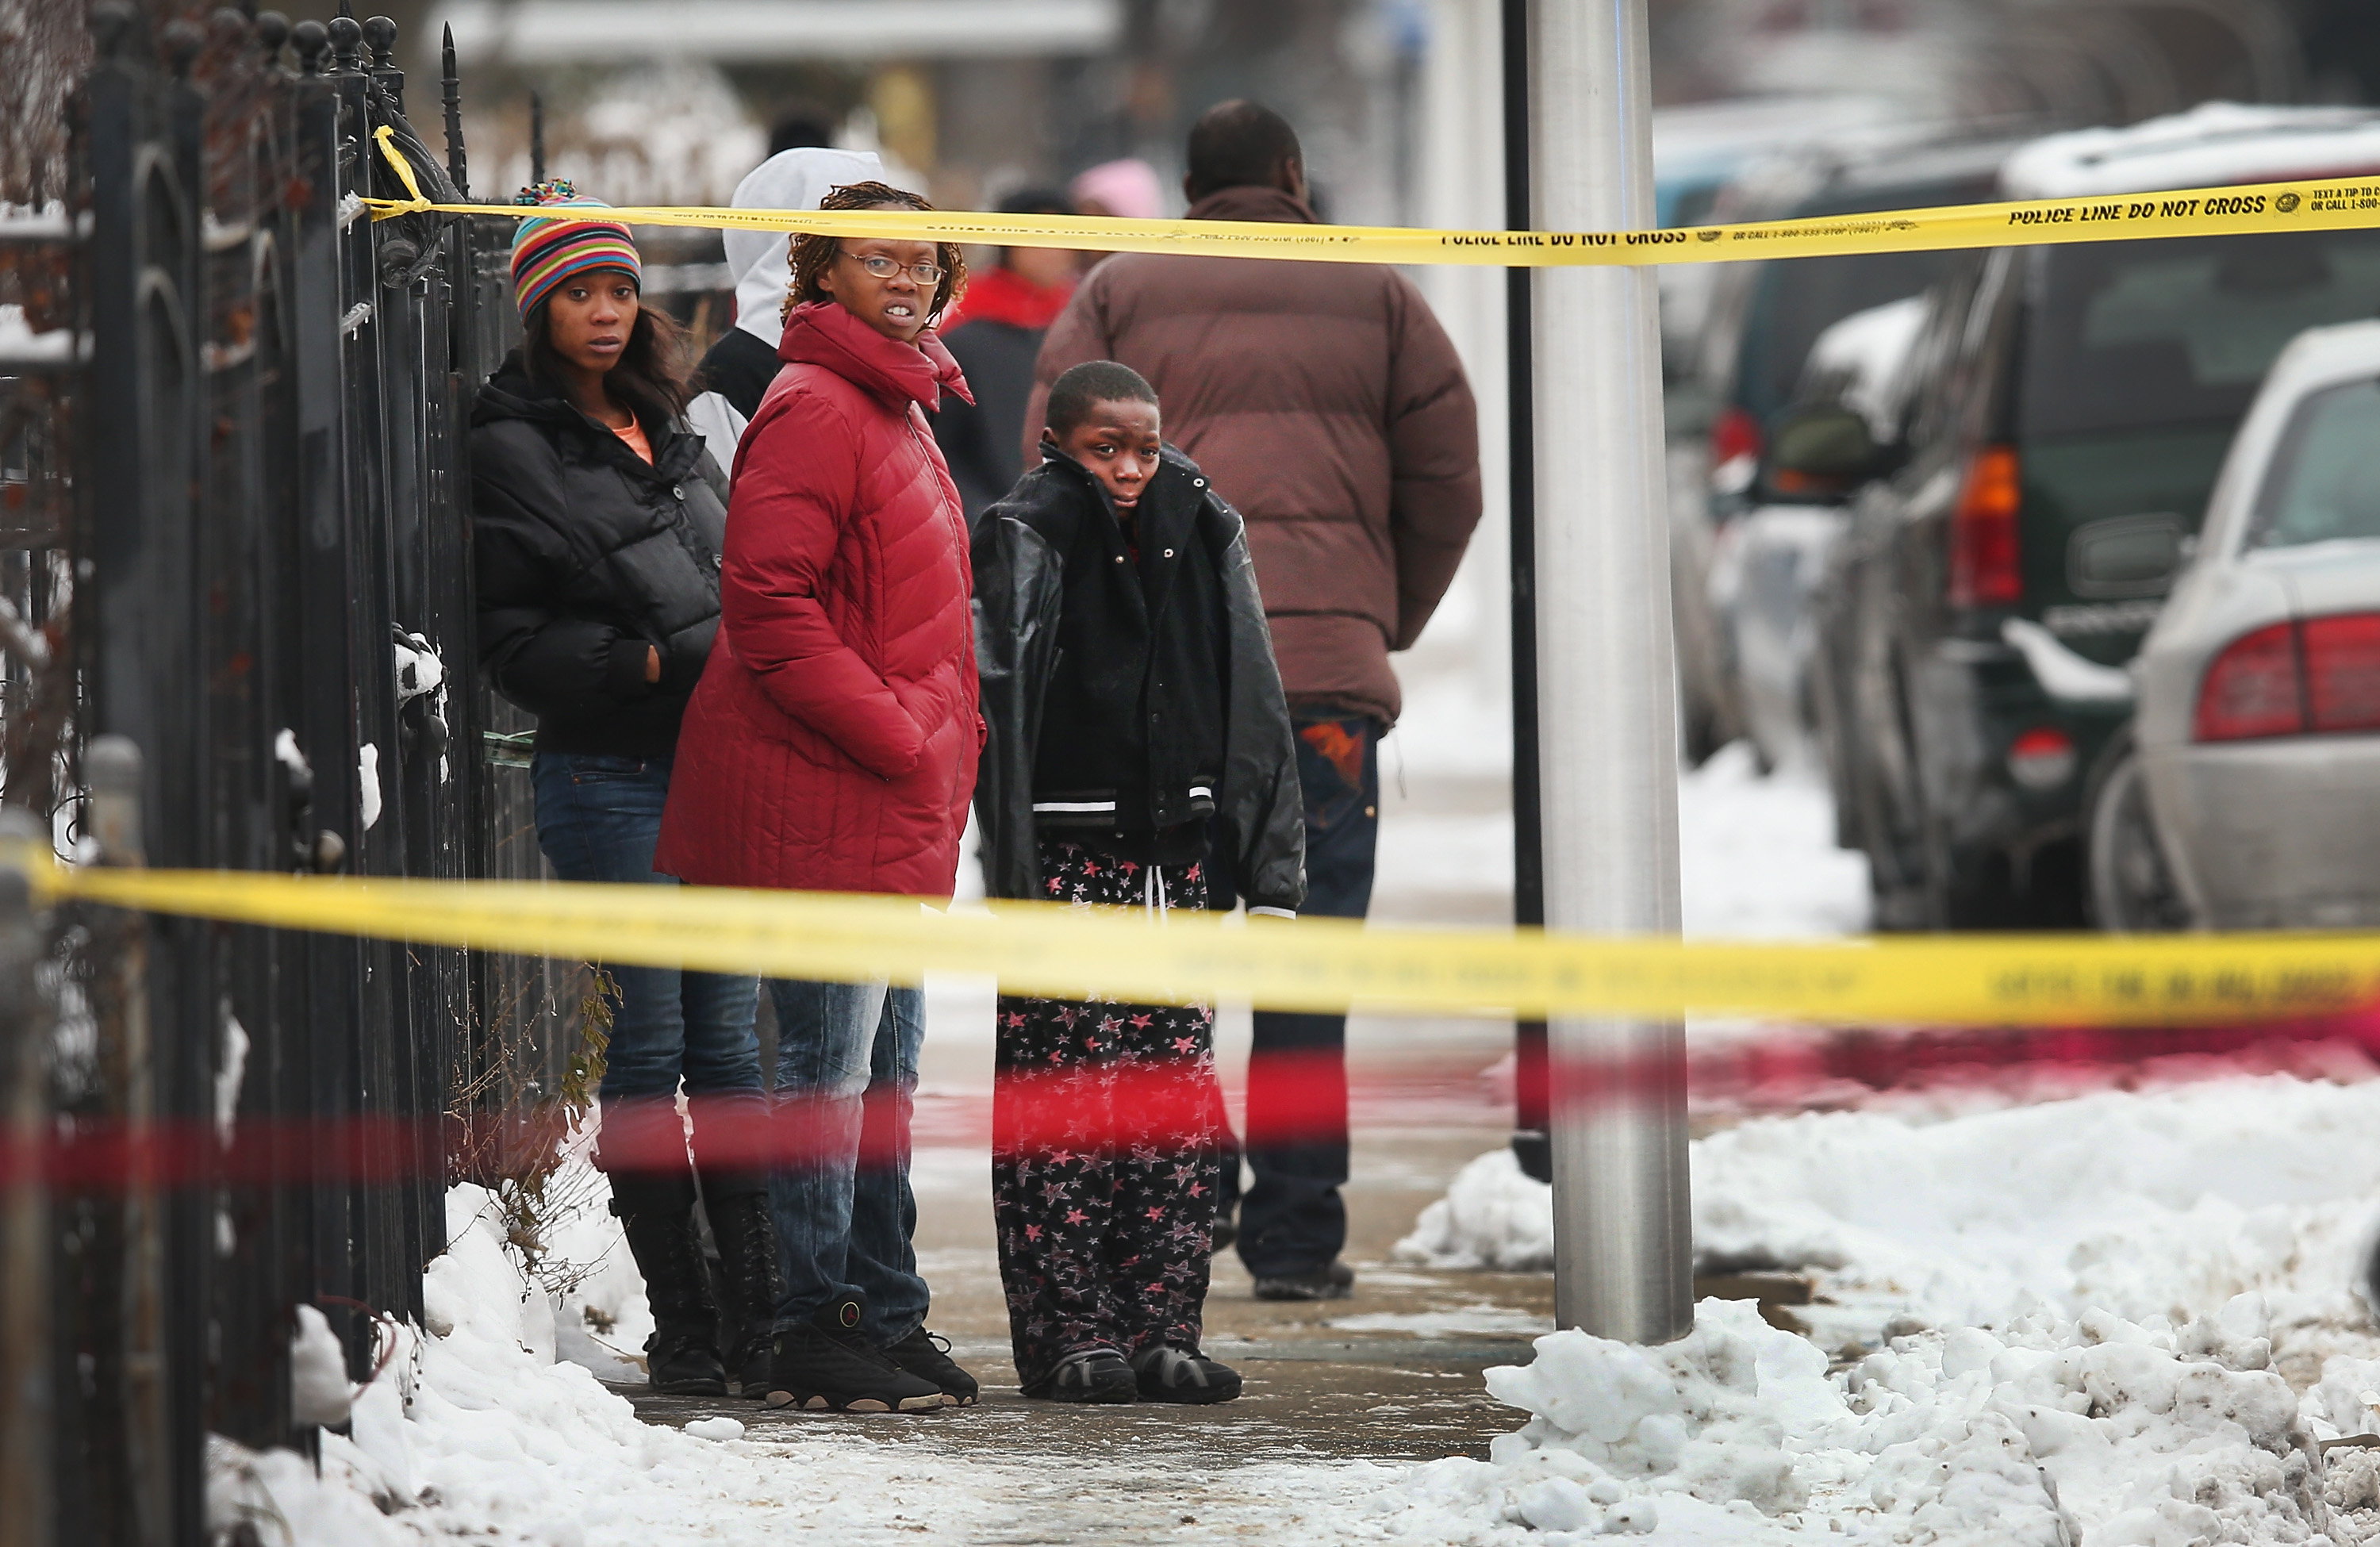 Despite Drop In Homicide Rate, A Violent Weekend Of Shootings In Chicago